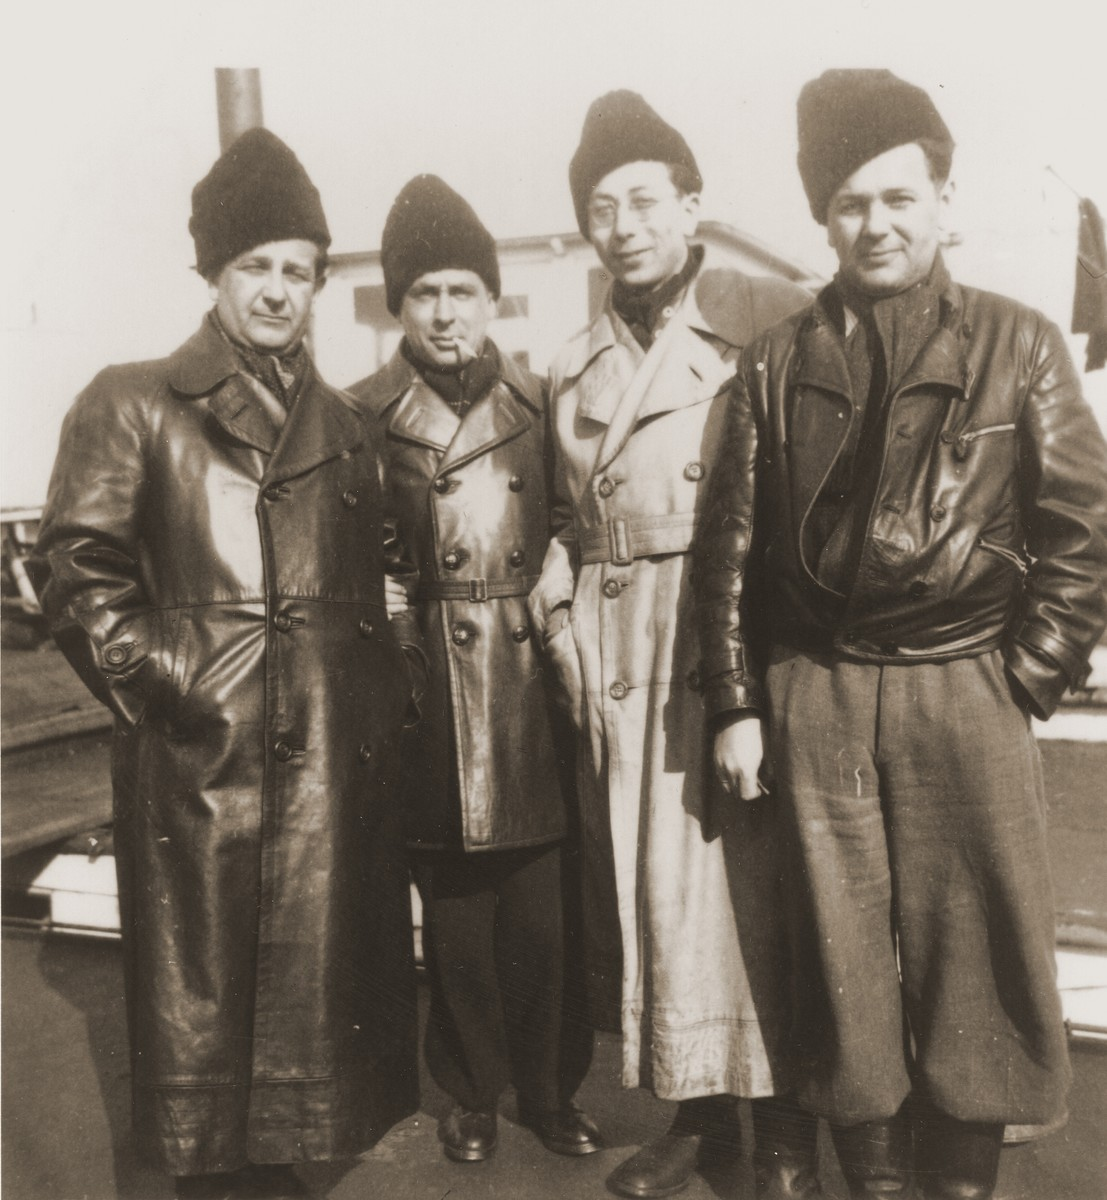 The leaders of the Kladovo transport stand on the deck of a riverboat docked in Kladovo harbor.  Pictured from right to left are Jozsi Schaechter, Jukl Dorfmann, Bata Gedalja and Emil Schaechter.